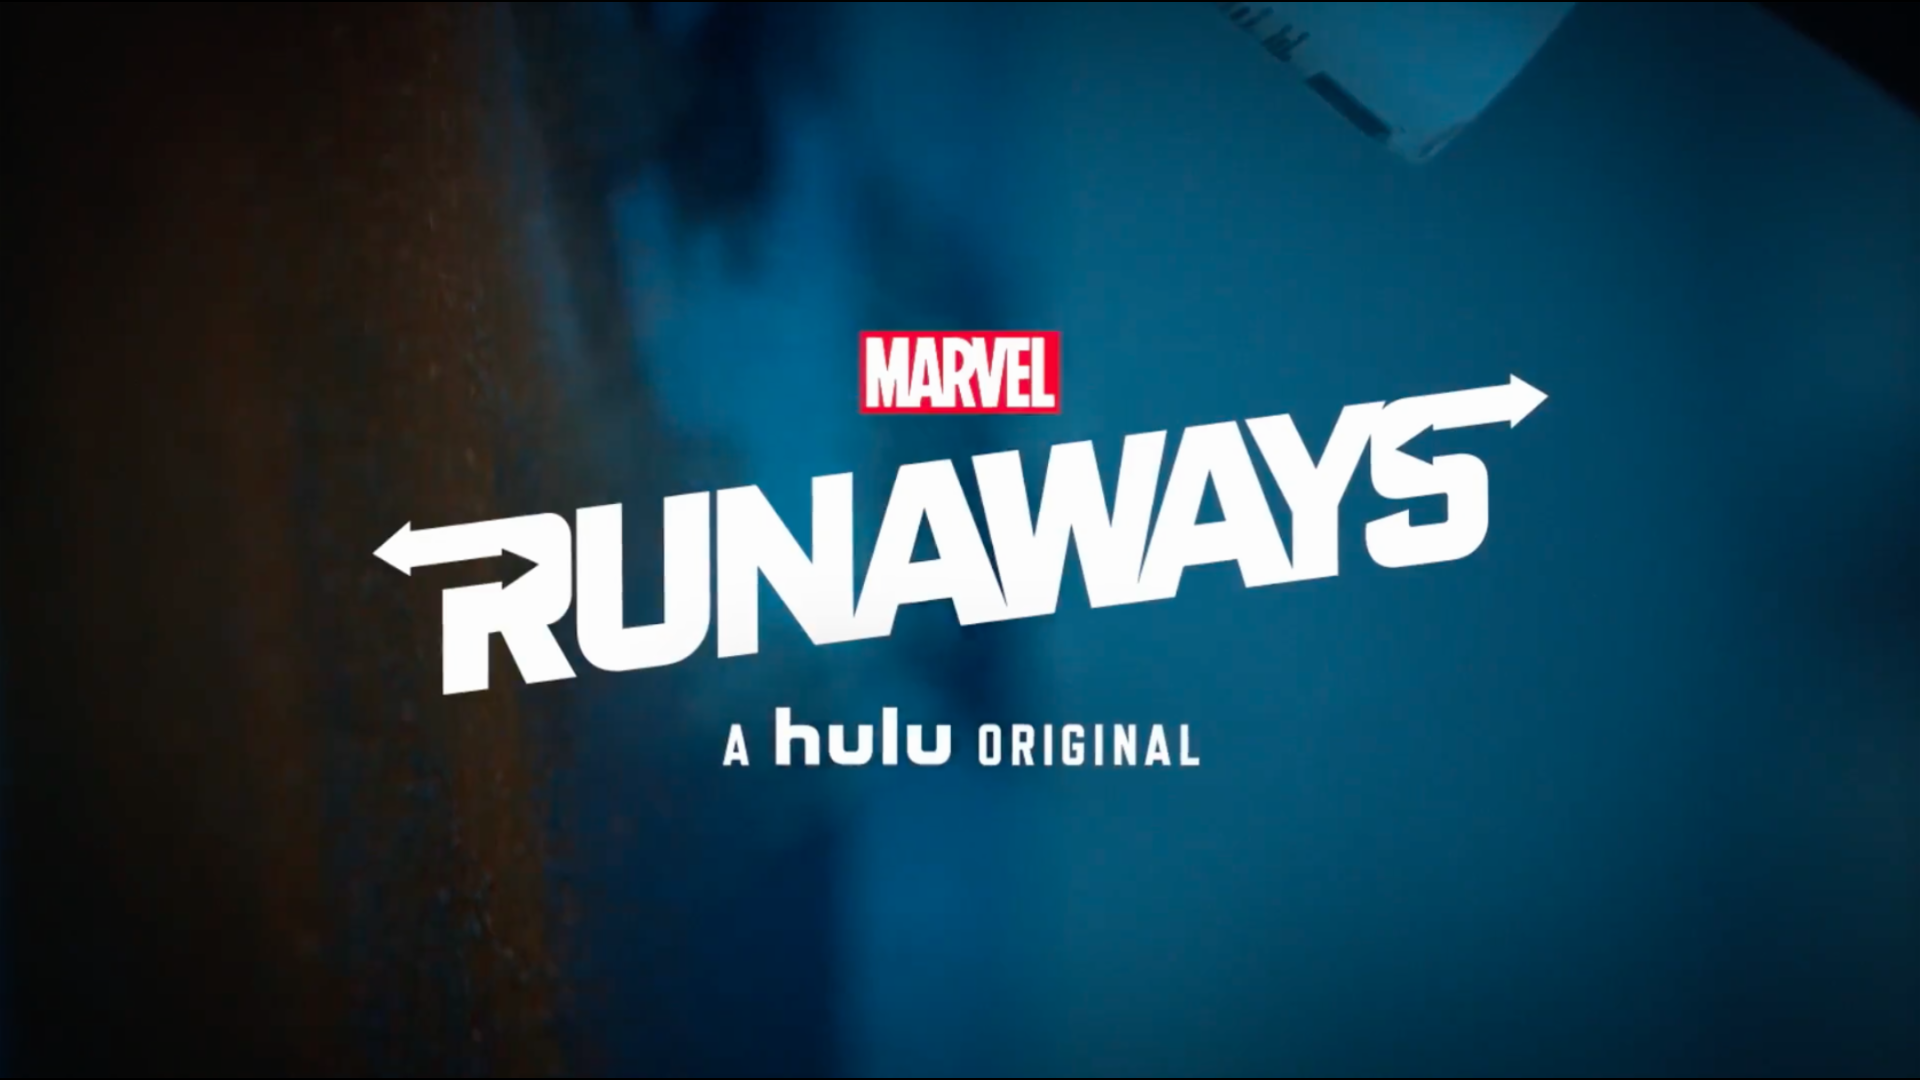 Marvel's Runaways Season 2 TRAILER screen capture